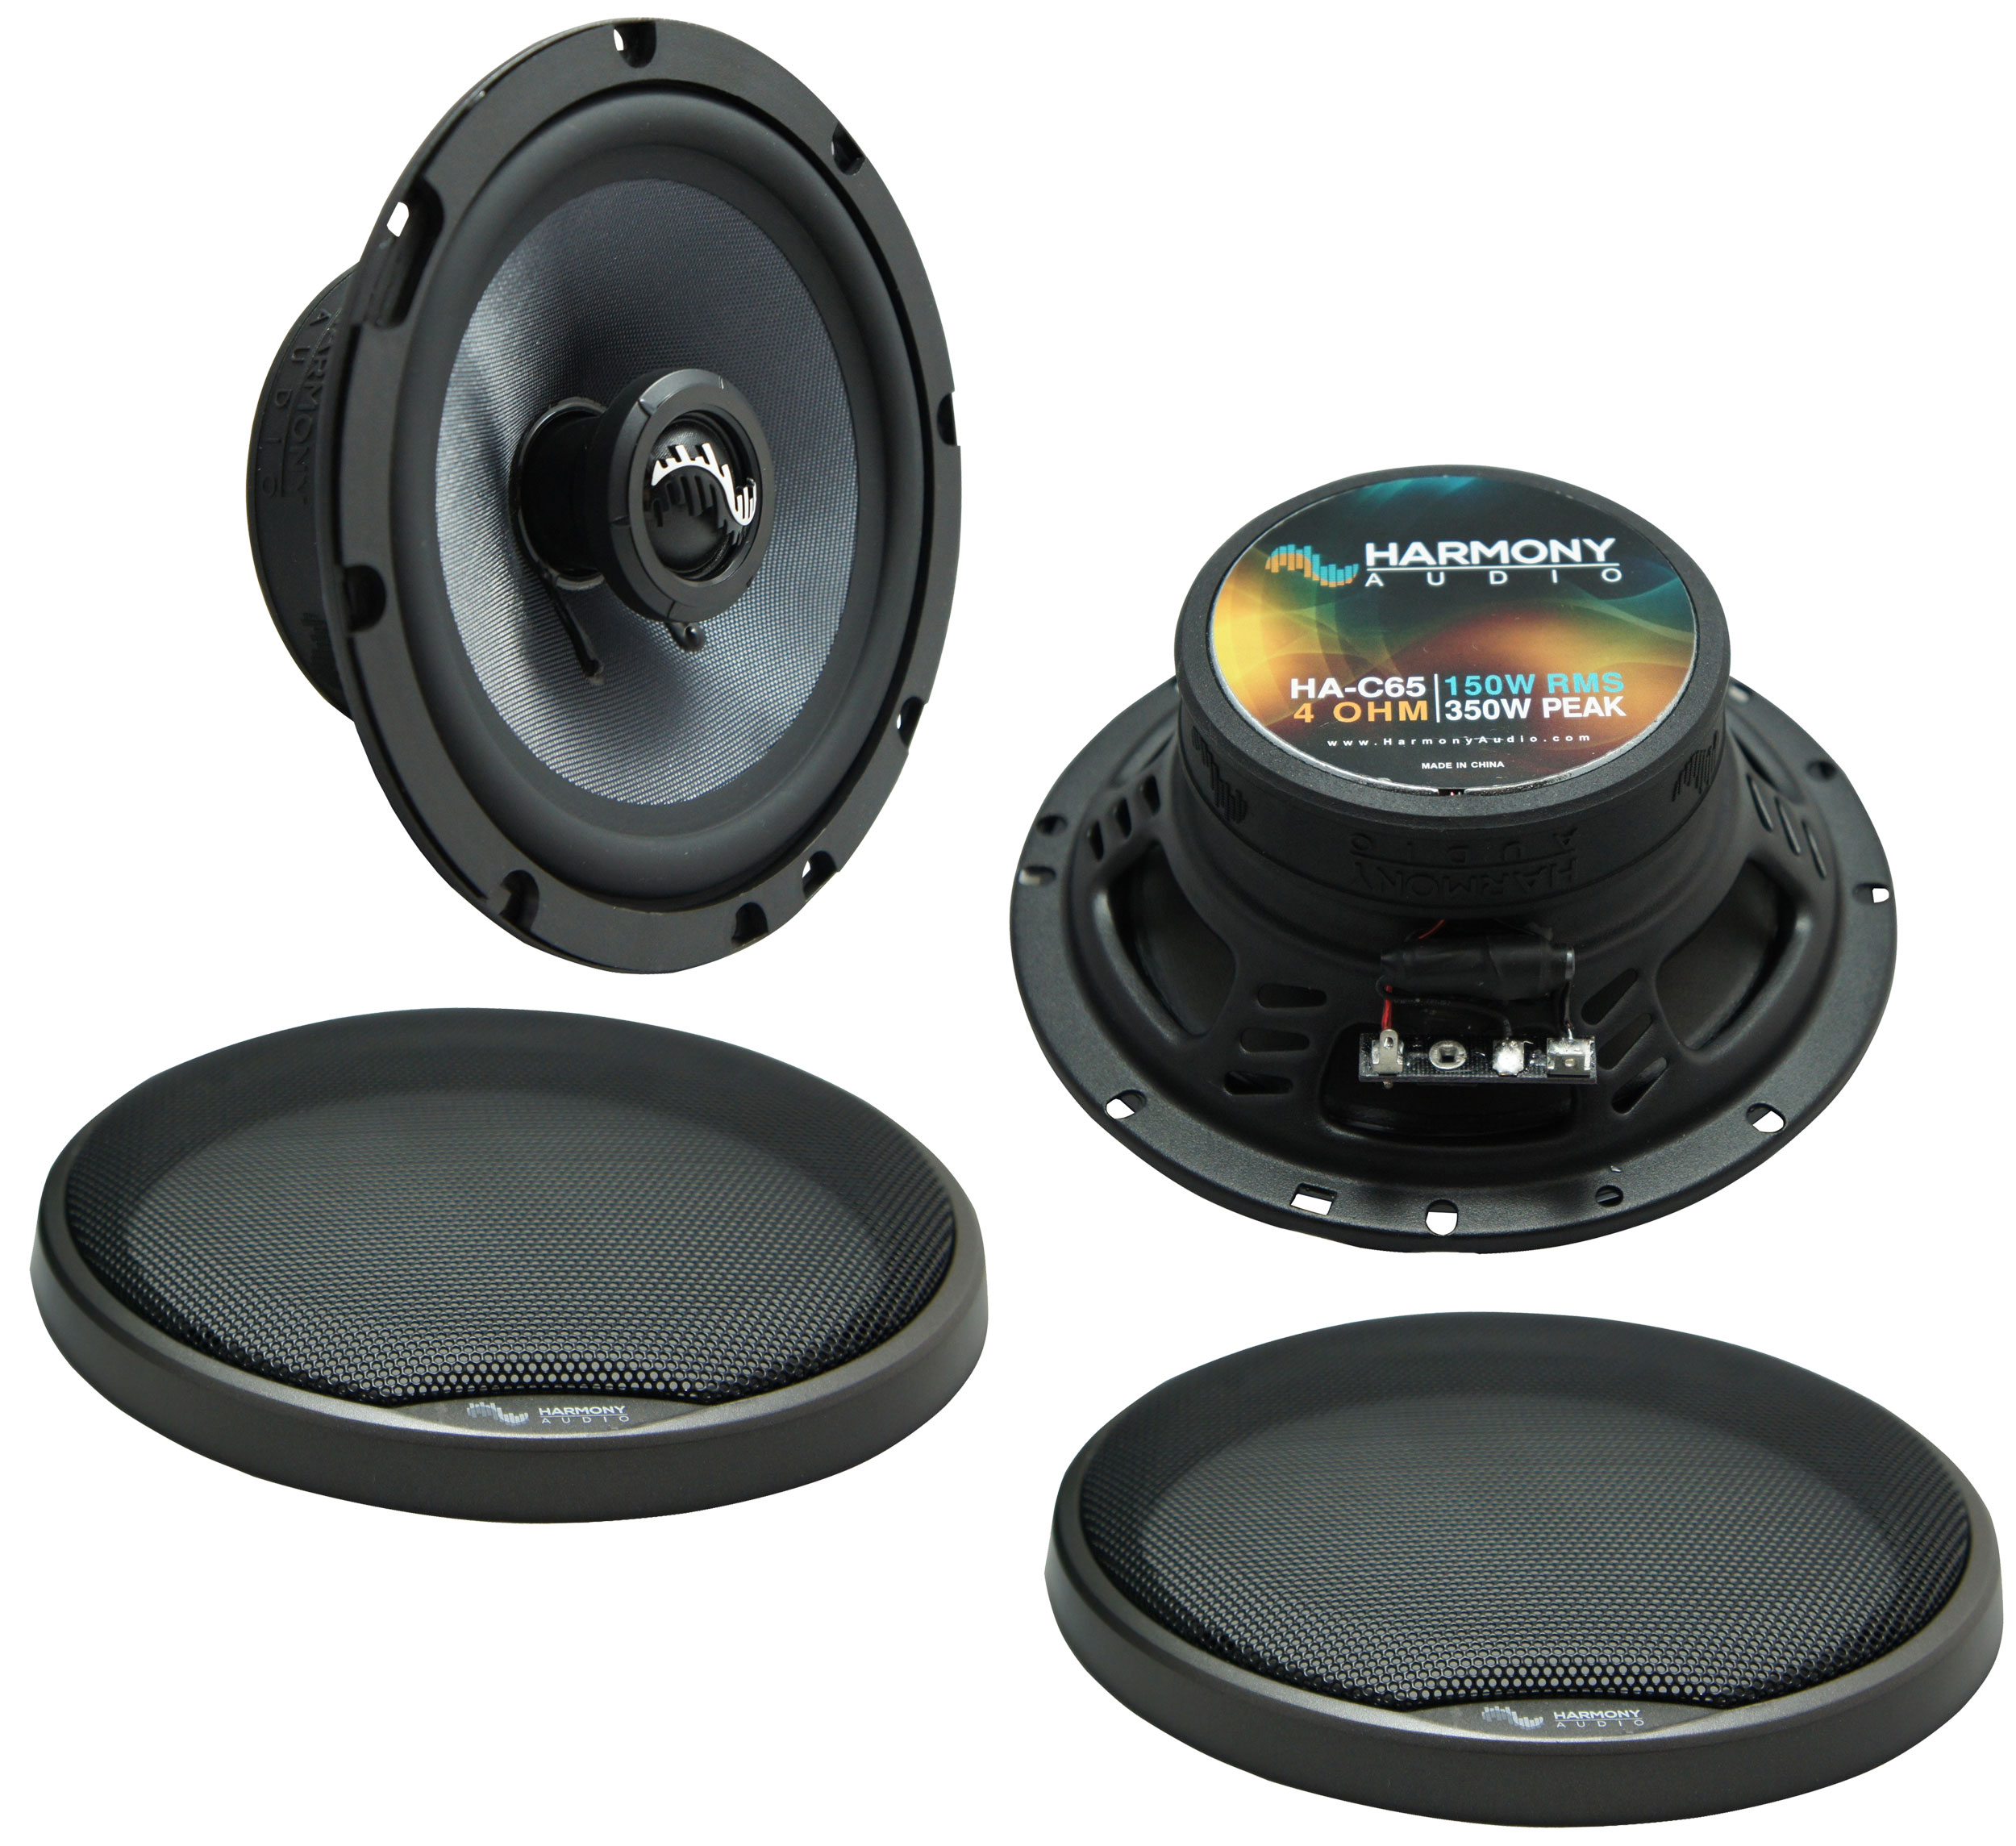 Fits Nissan Sentra 2000-2006 Rear Deck Replacement Harmony HA-C65 Premium Speakers New